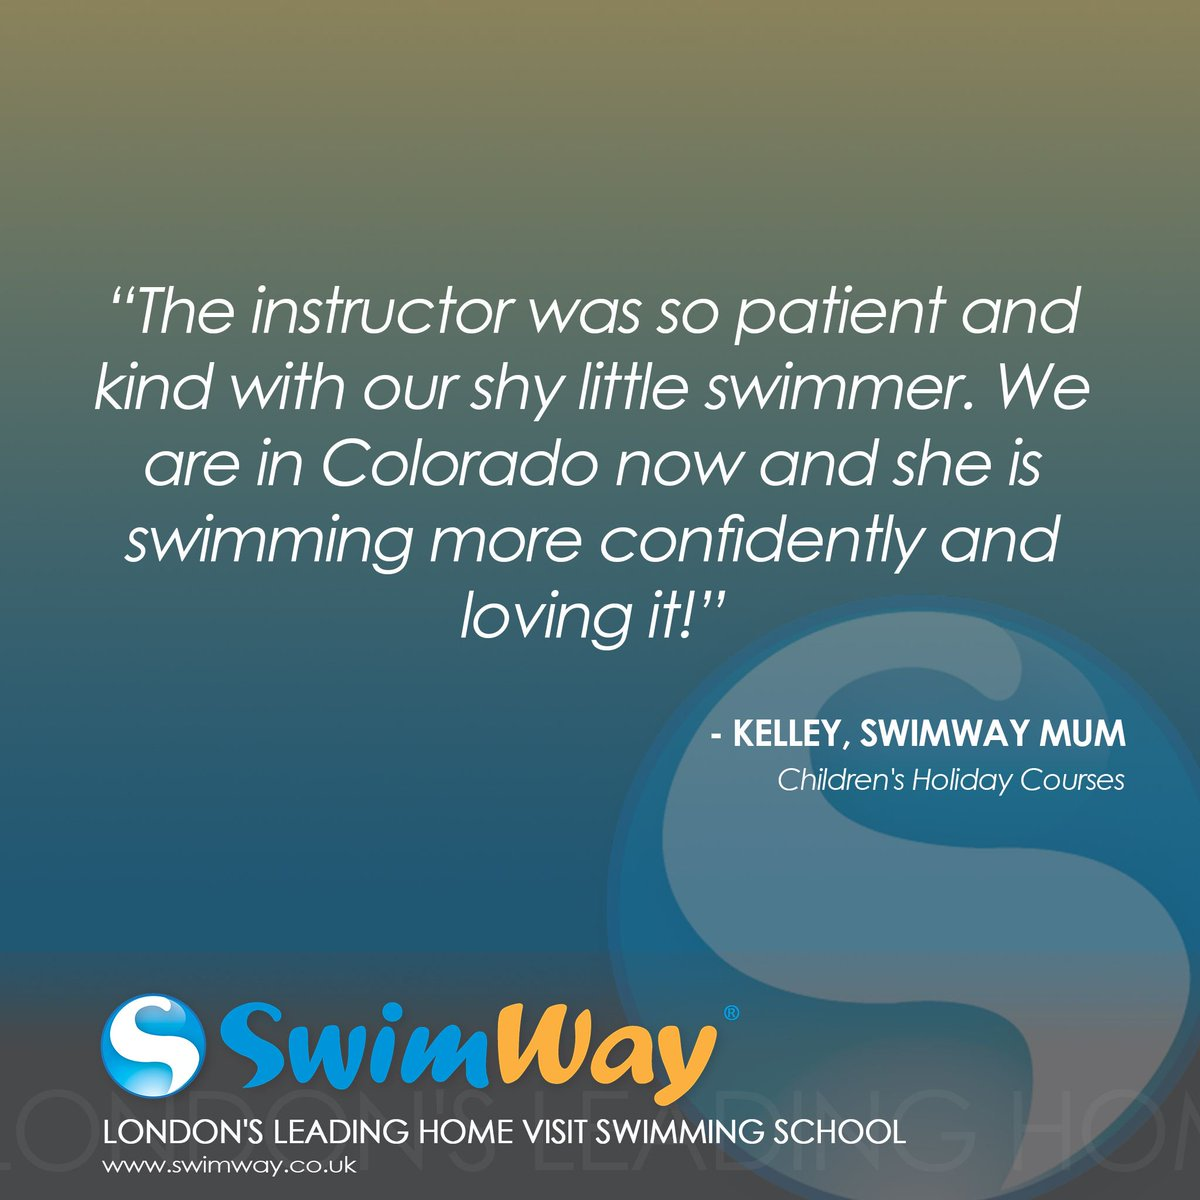 #loveswimming #swimming #parents #children #healthy #learntoswim #swimmingschool #swimminglessons #lifesavingskill #learning #testimonial #feedback #love #teacher #happy #encouragement #instructor #learning #thankyou #recommend #happycustomer #review #trusted #like #trustedseller